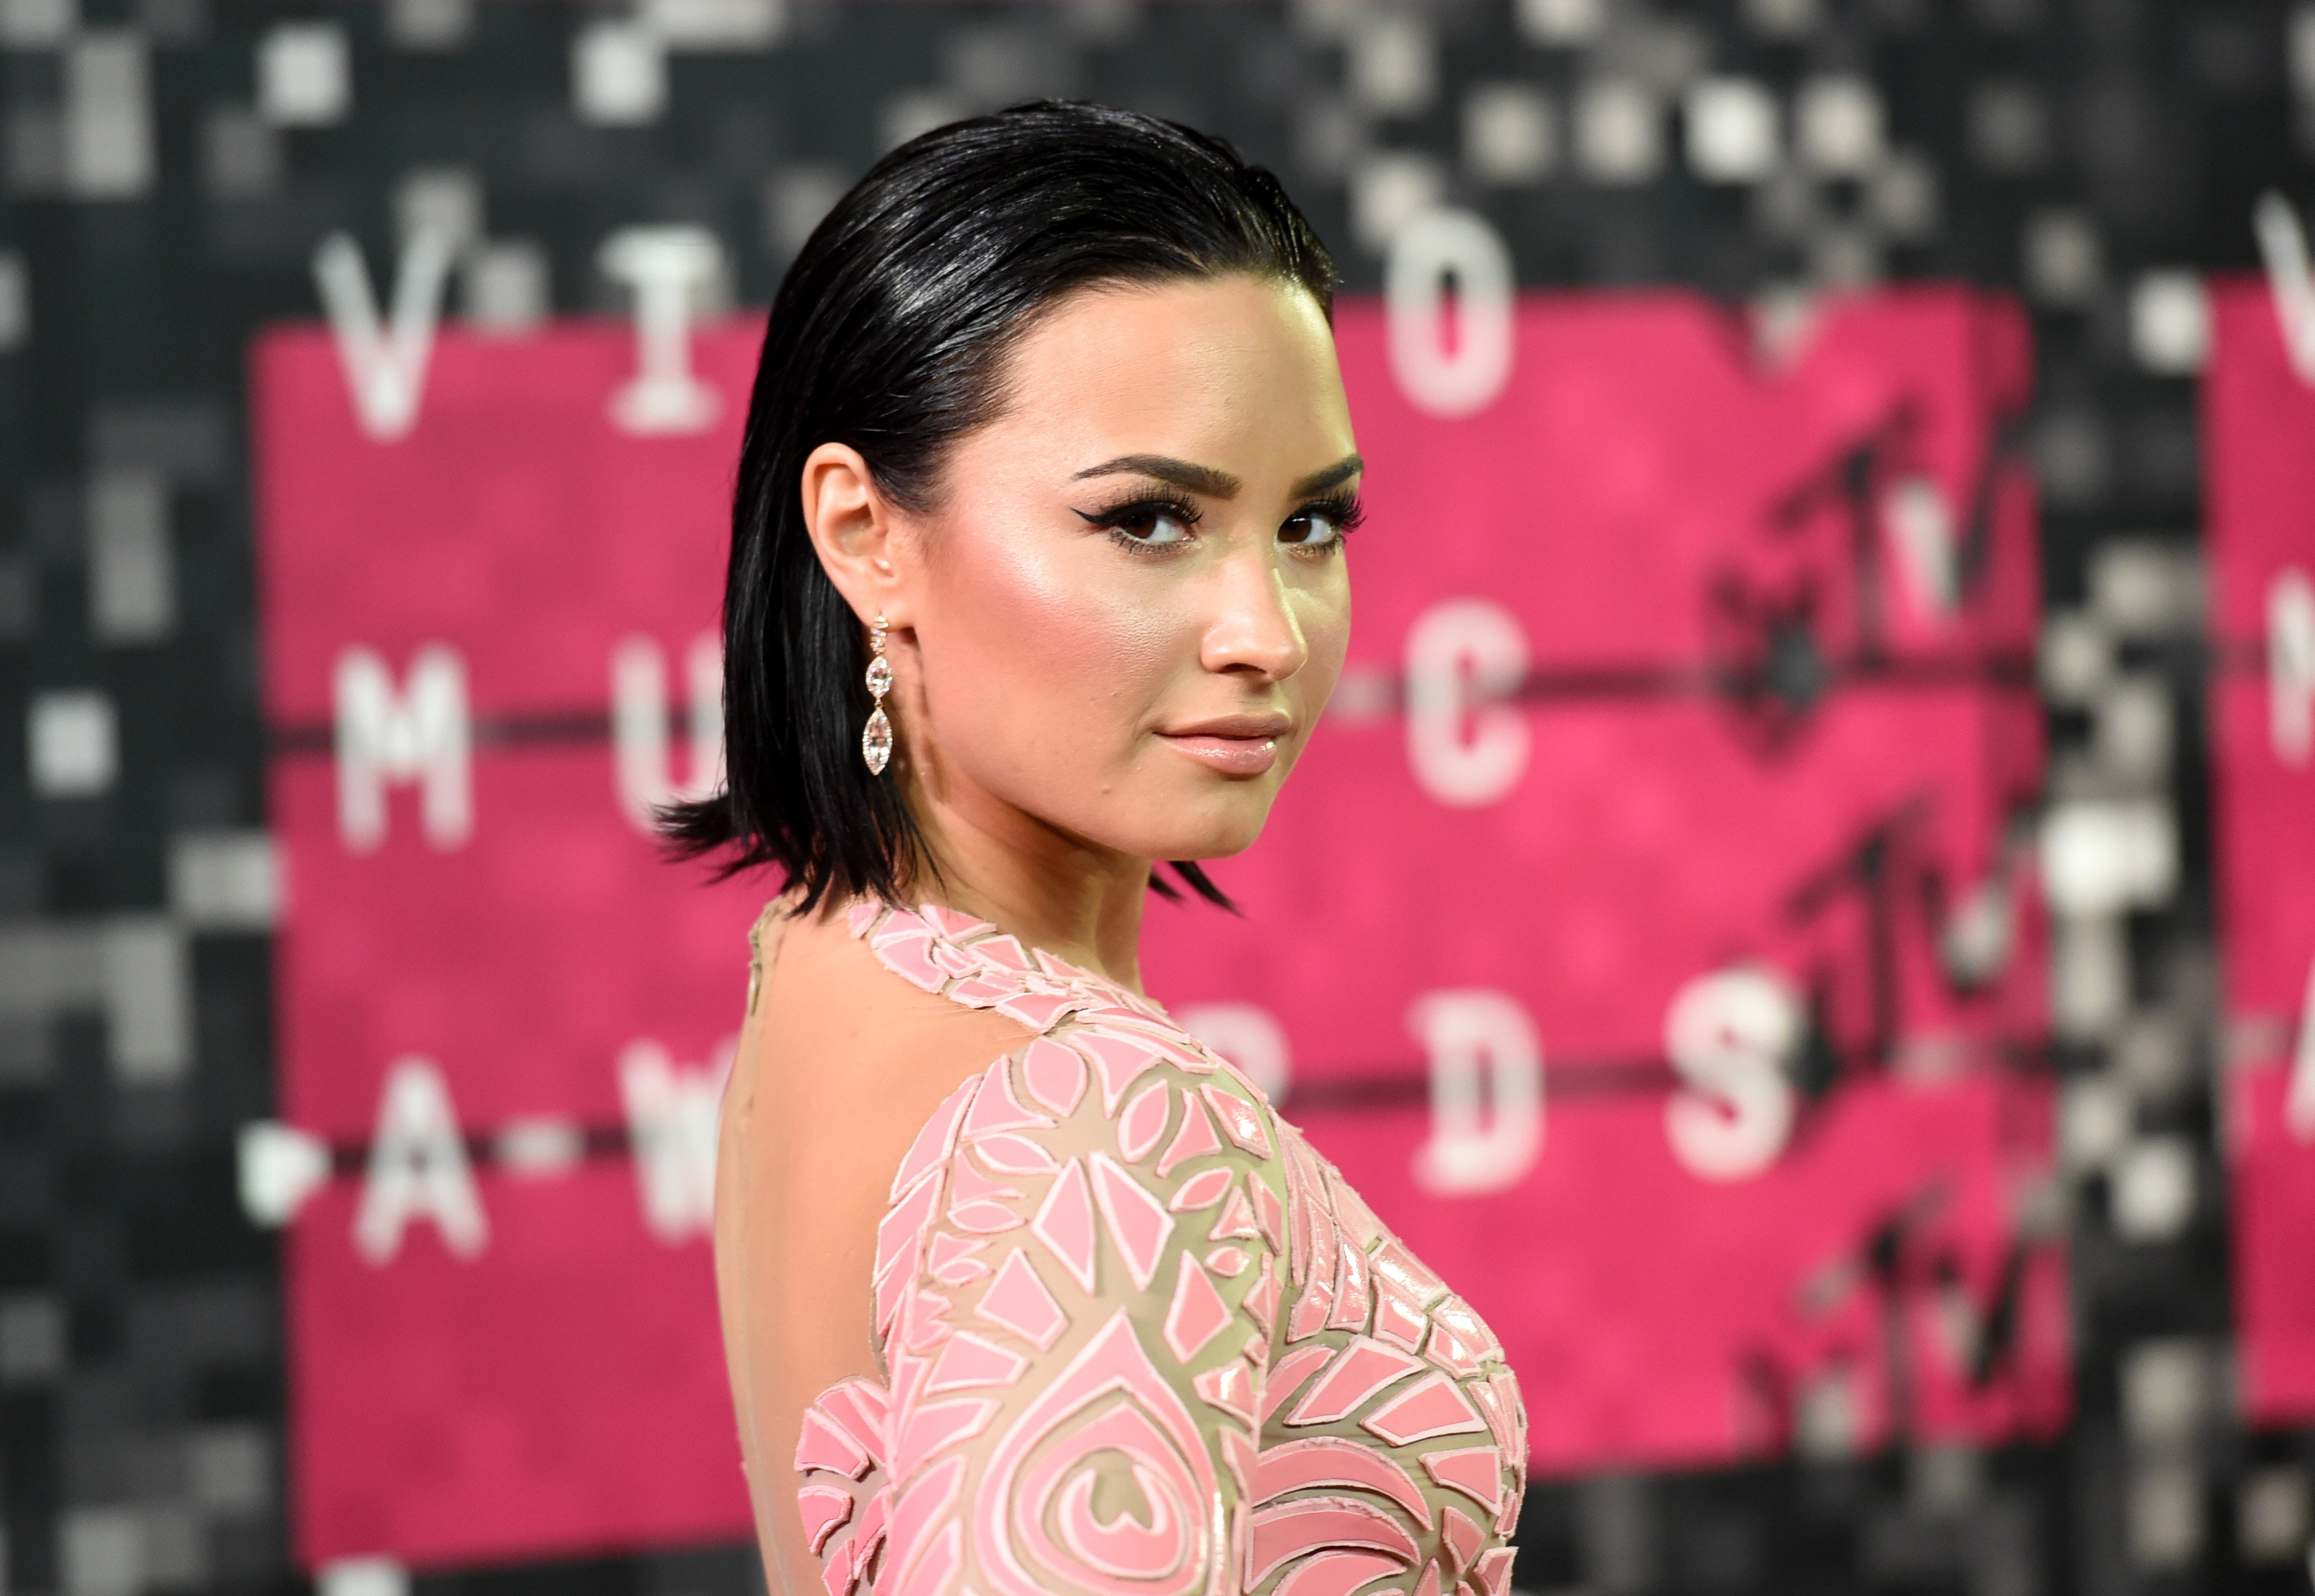 Demi Lovato attends the 2015 MTV Video Music Awards at Microsoft Theater on August 30, 2015 | Photo: Getty Images